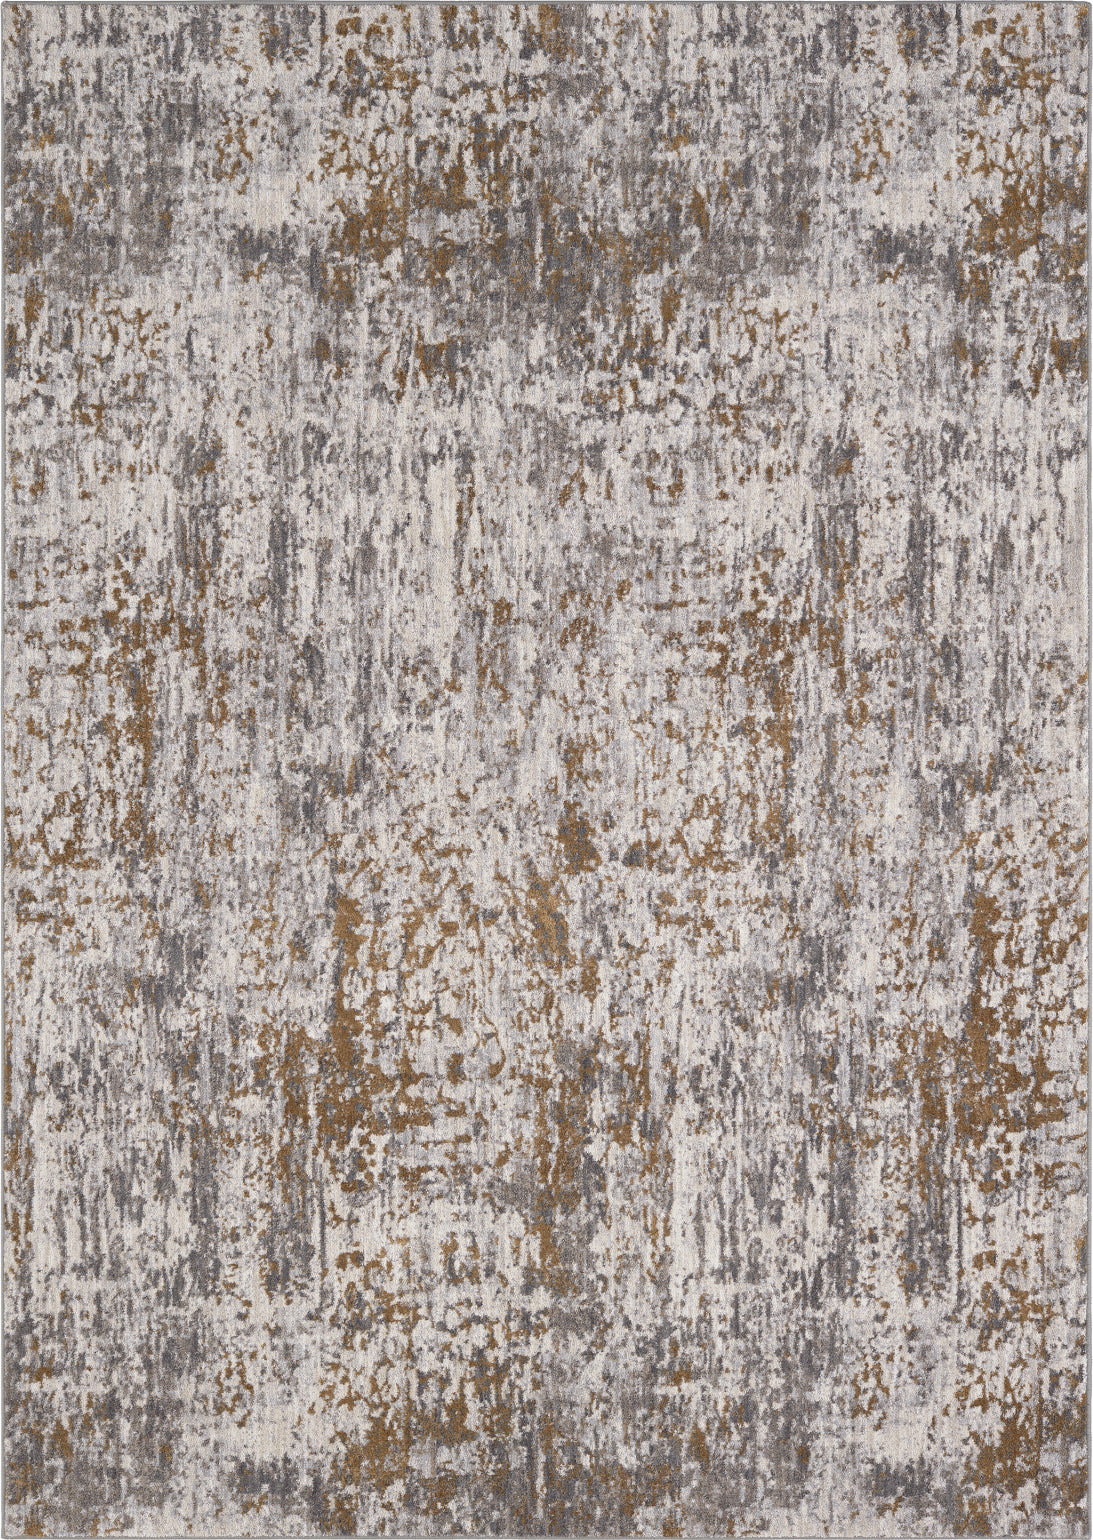 Karastan Enigma Metamorphic Brushed Gold Area Rug main image